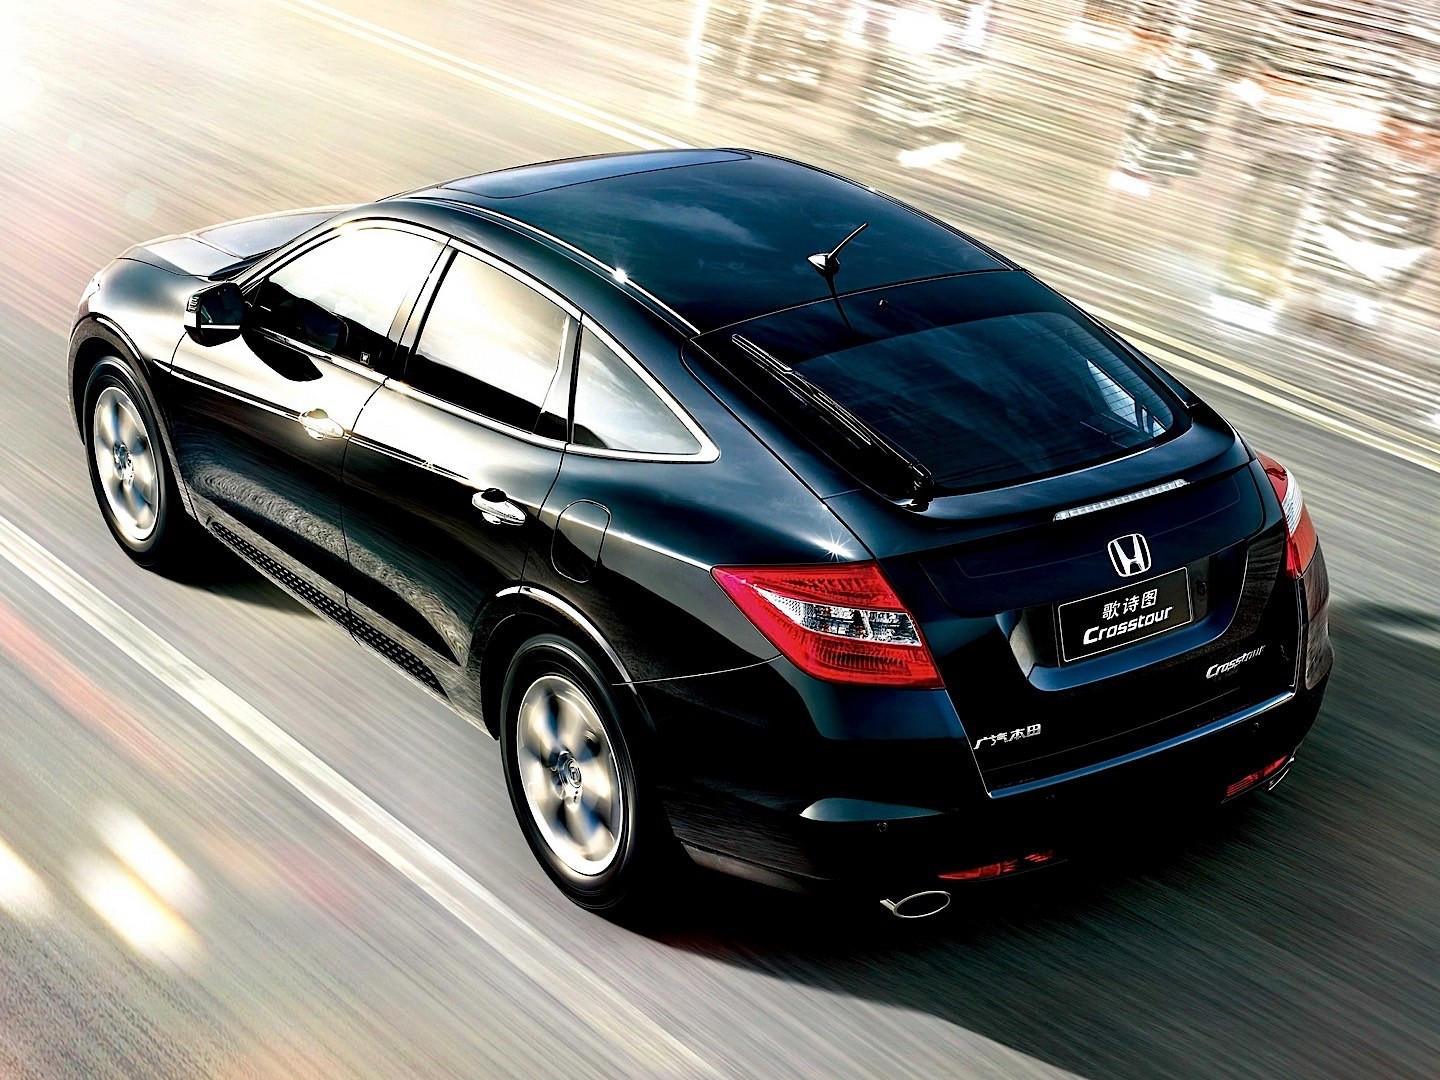 2011 Honda Accord For Sale >> HONDA Accord Crosstour specs - 2009, 2010, 2011, 2012, 2013 - autoevolution